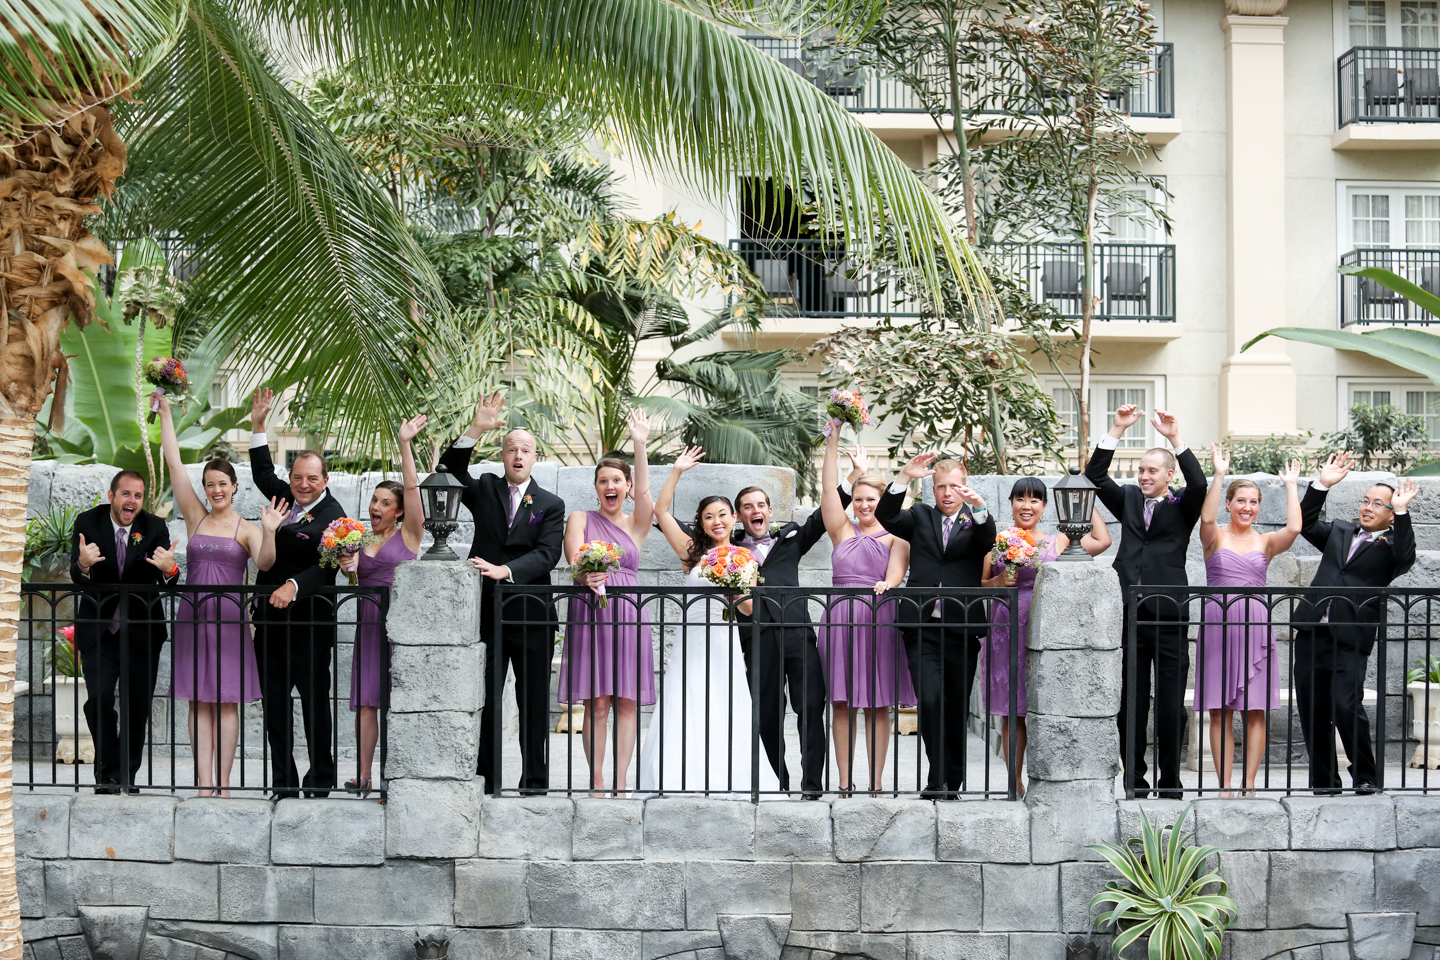 www.livehappystudio.com-wedding-photographer-orlando-fun-candid-portrait-party-purple-gaylord-palms-hotel-5.jpg